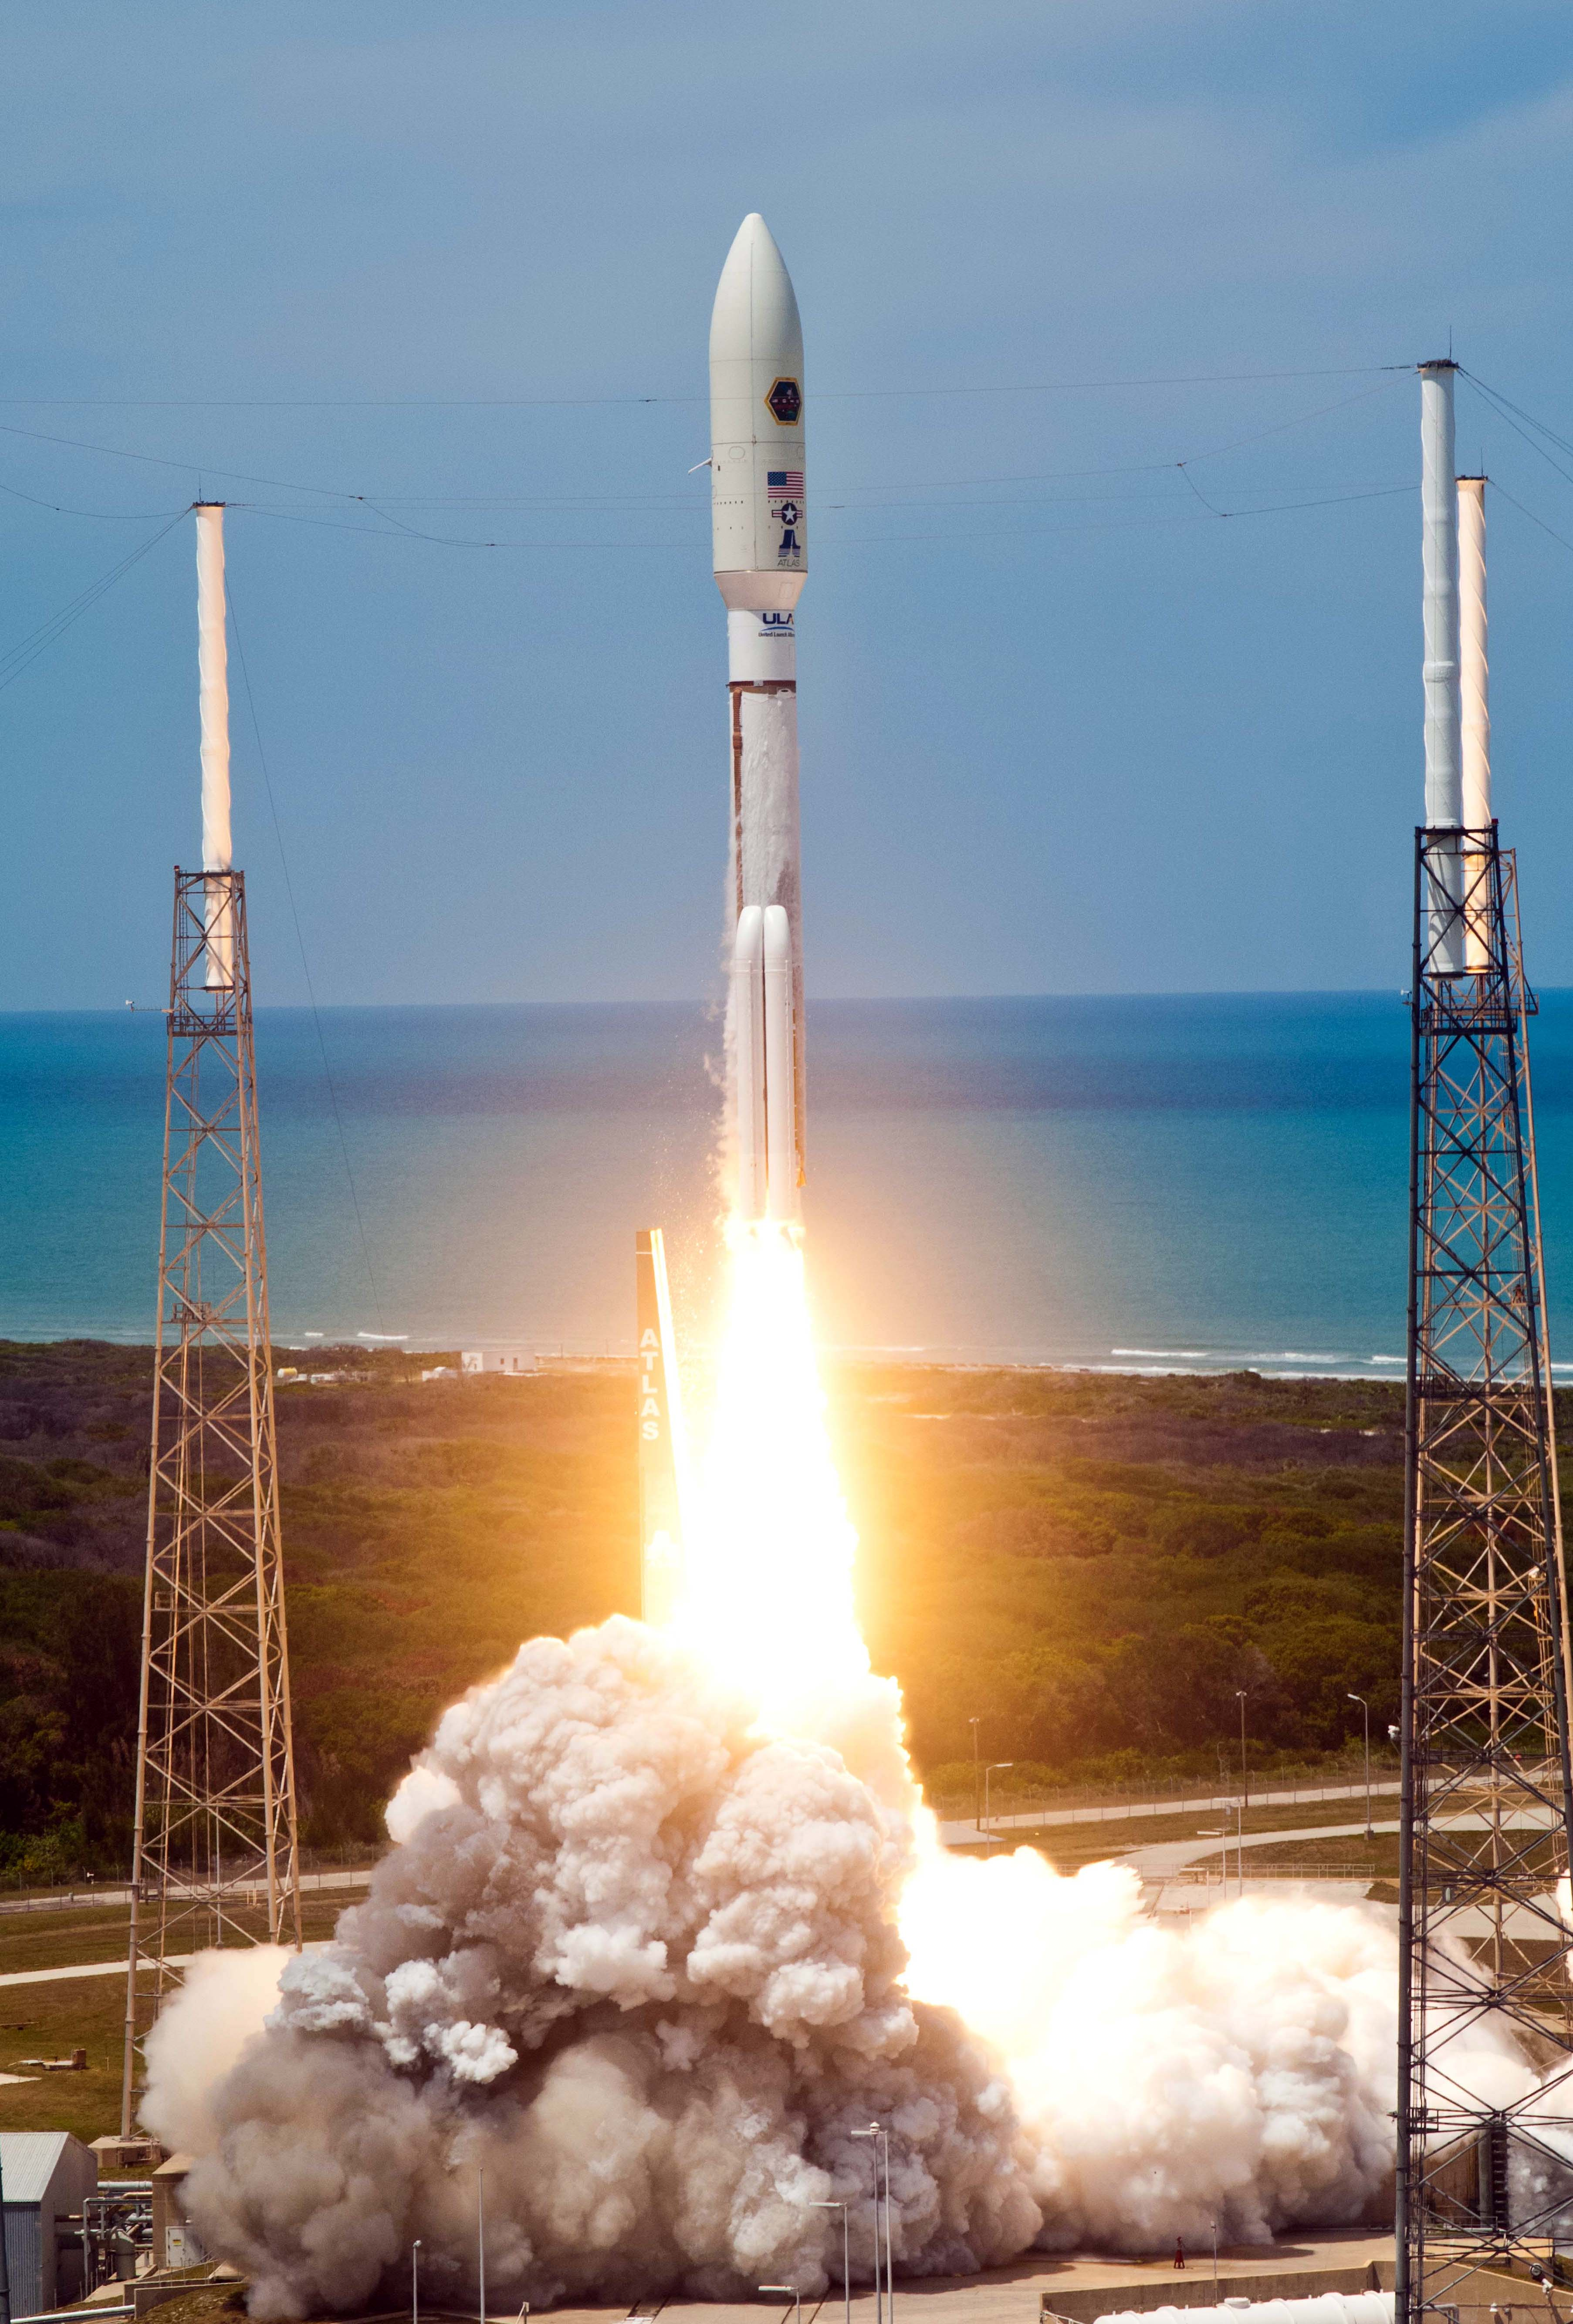 Atlas 5 launches from Cape Canaveral on May 4, 2012